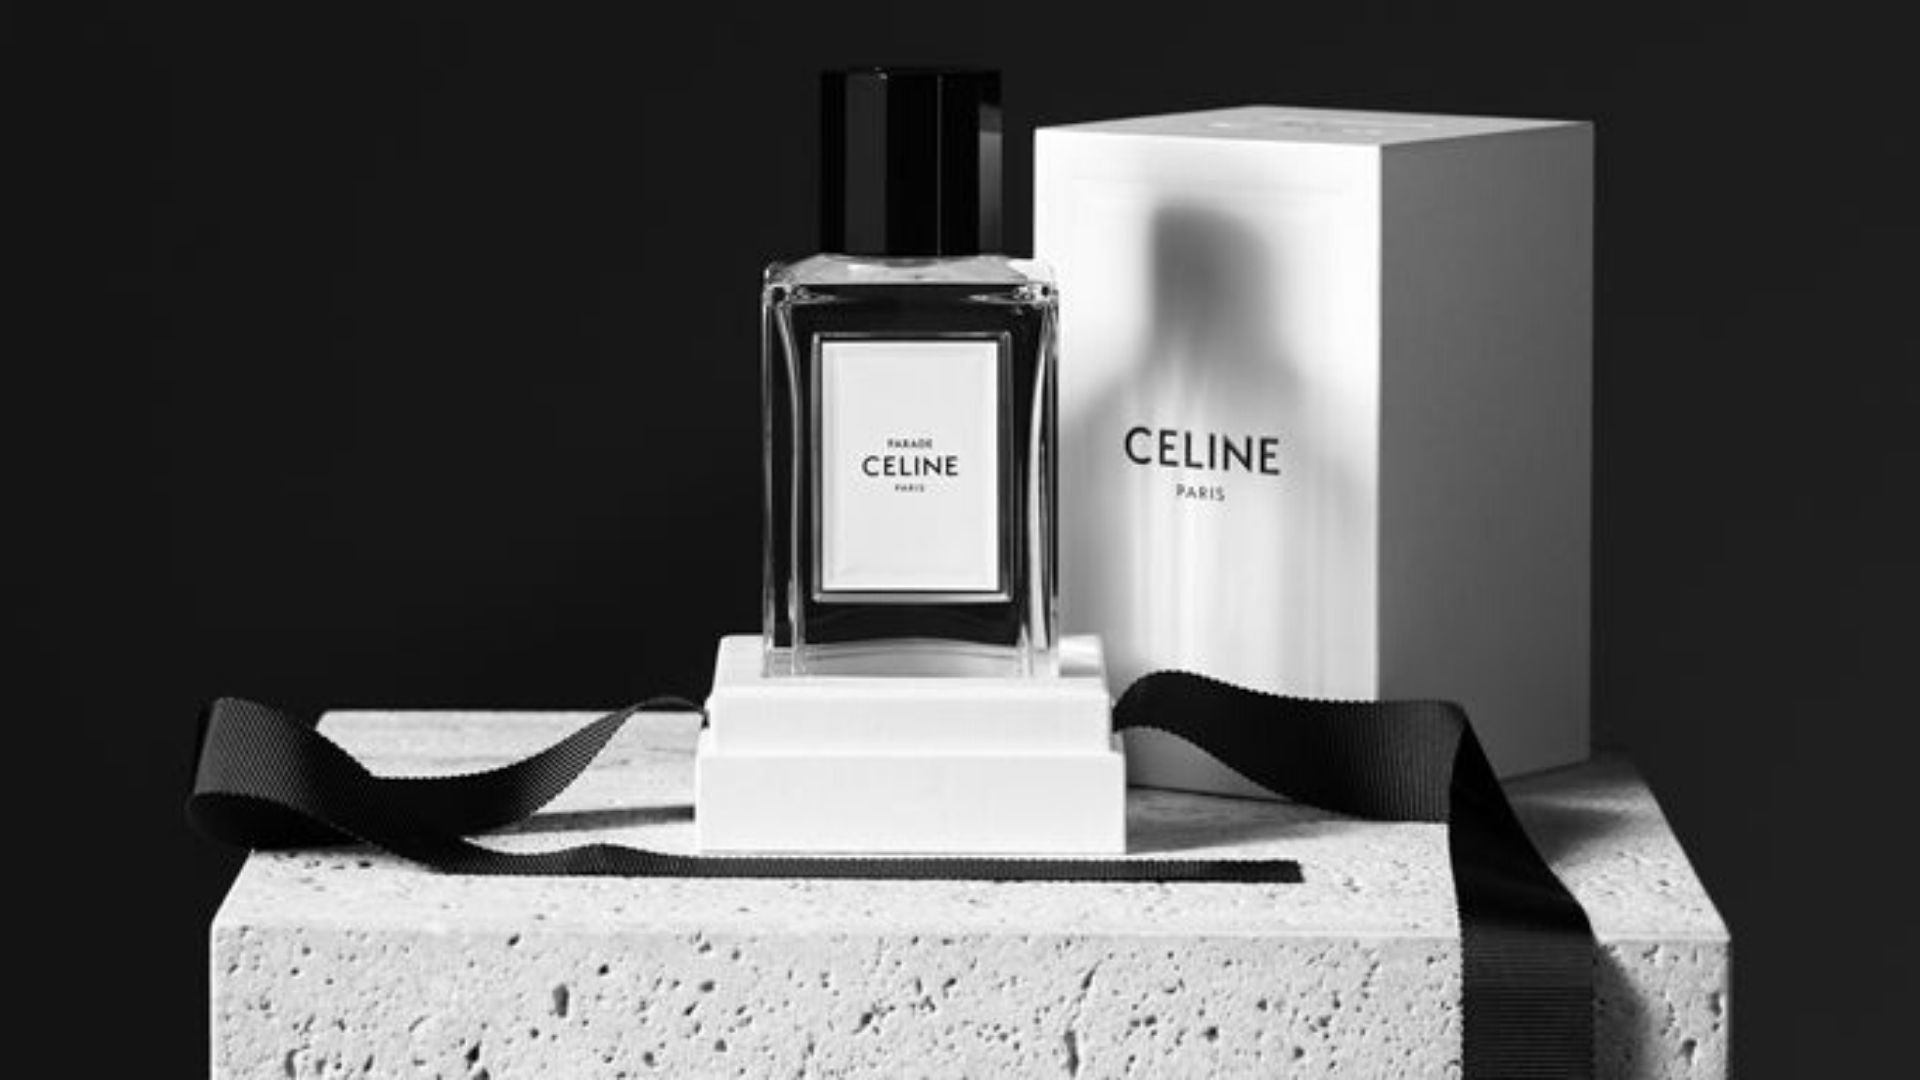 You Can Now Shop Celine's Haute Fragrance Collection At Its Dedicated Parfumerie In Paris